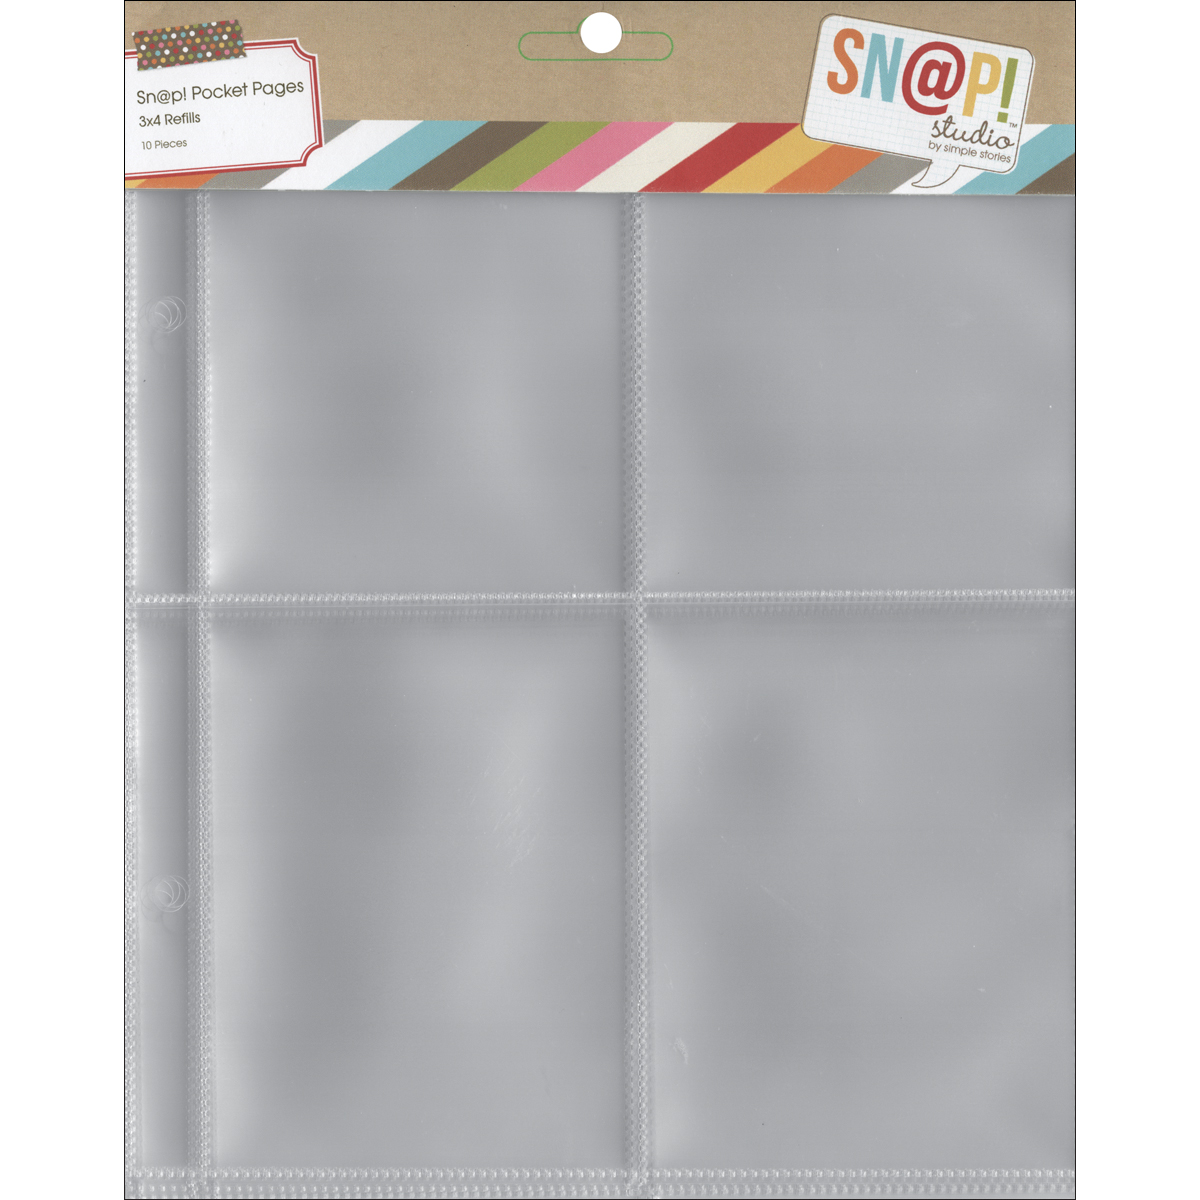 Simple Stories SNAP Studio Collection 3 X 4 Divided Page Protectors